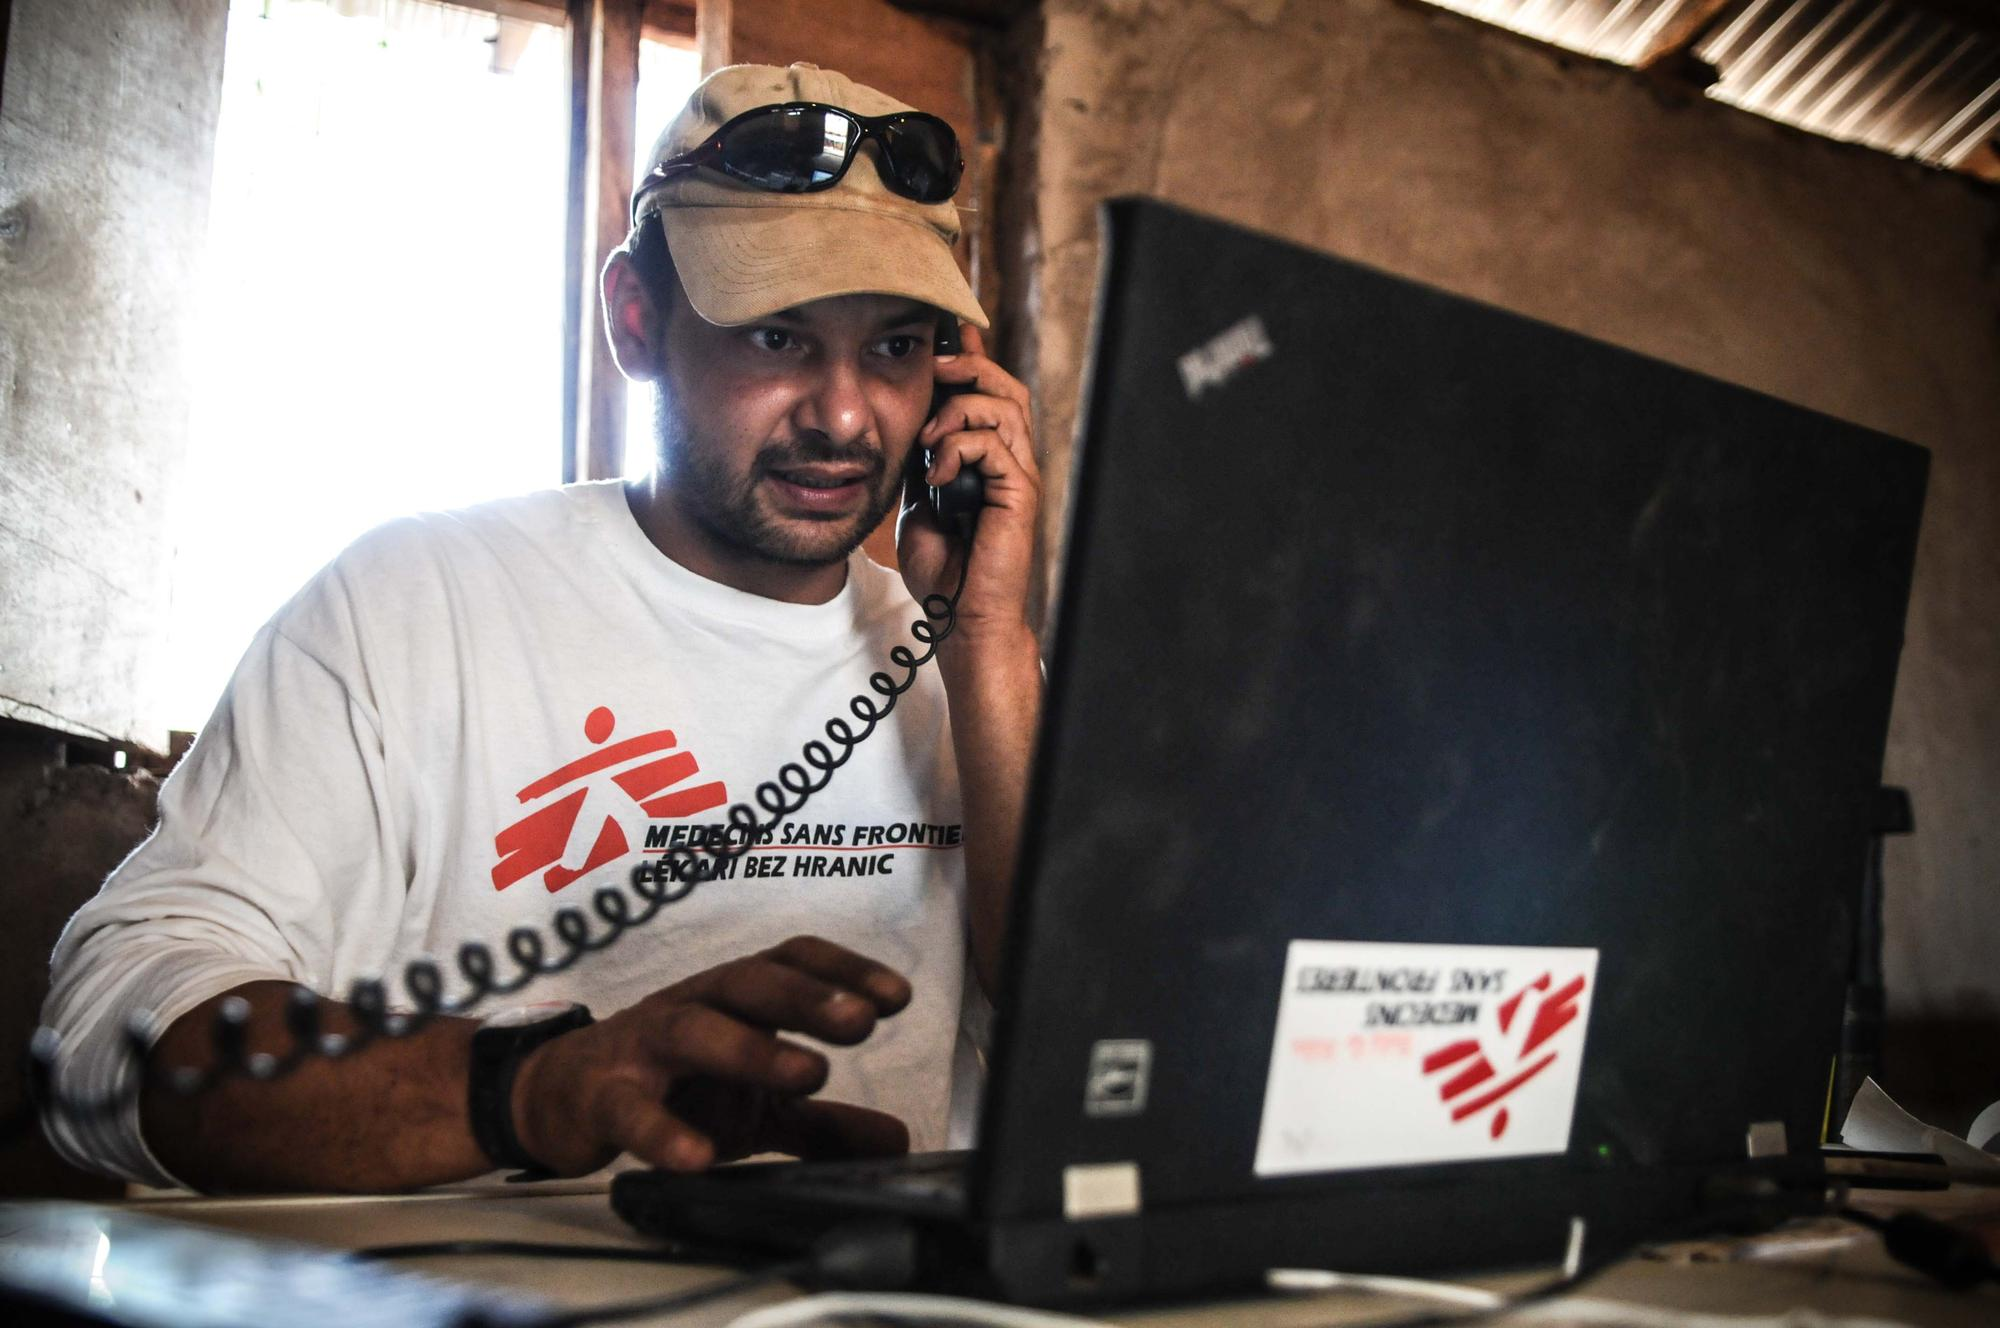 Man wearing MSF shirt sitting at a laptop and talking on the phone.